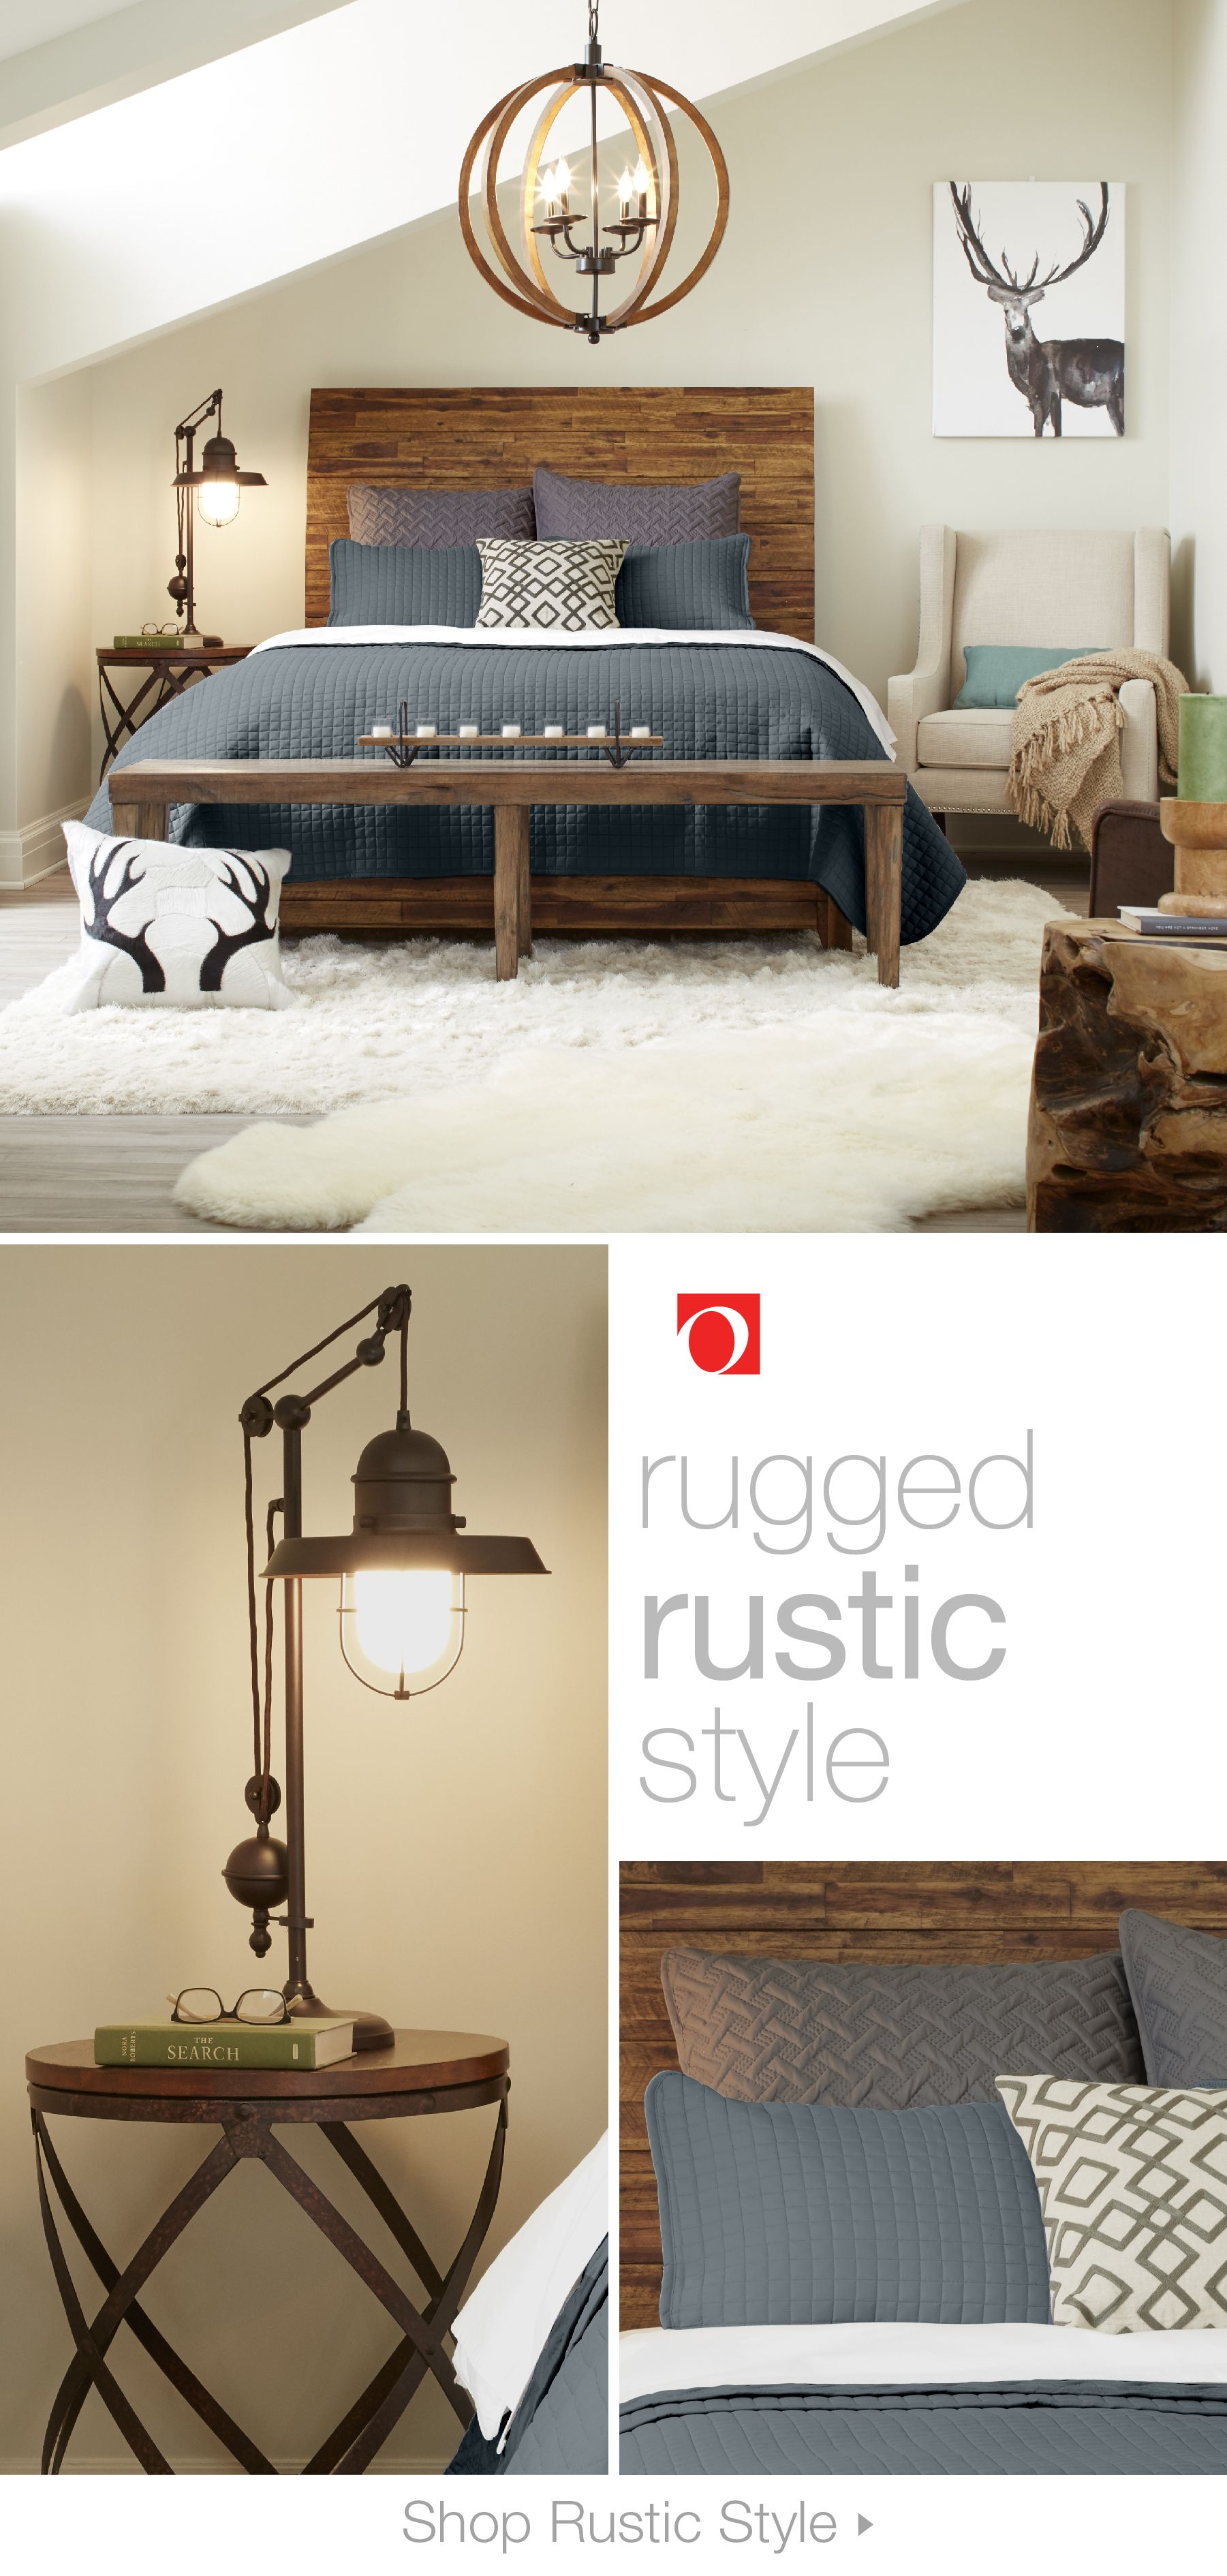 Give the inside of your home some inspiration from the outside with Rustic furniture and decor from Overstock. Rugged wood furniture, natural textiles, and worn leather upholsteries give Rustic-style interiors the feel of a cozy, mountainside cabin. #rusticdecor #rusticfurniture